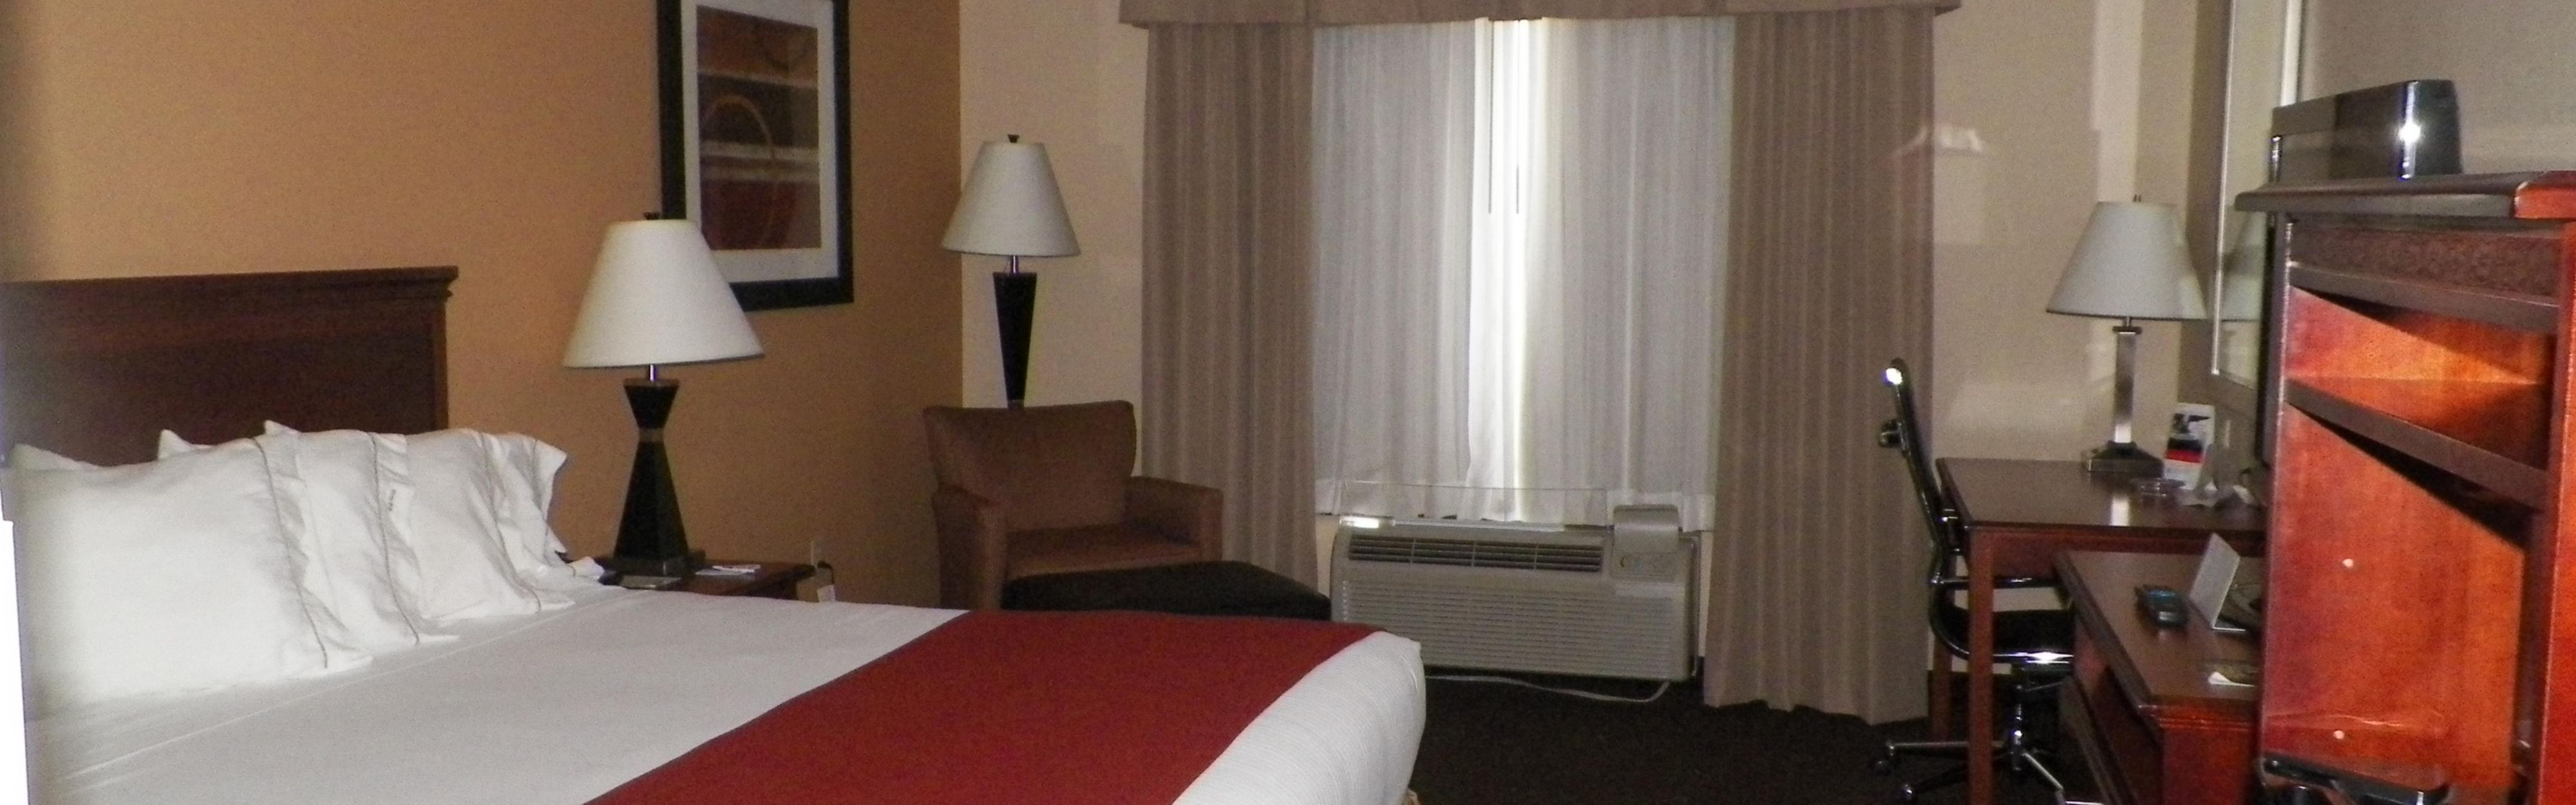 Holiday Inn Express & Suites Forest image 1